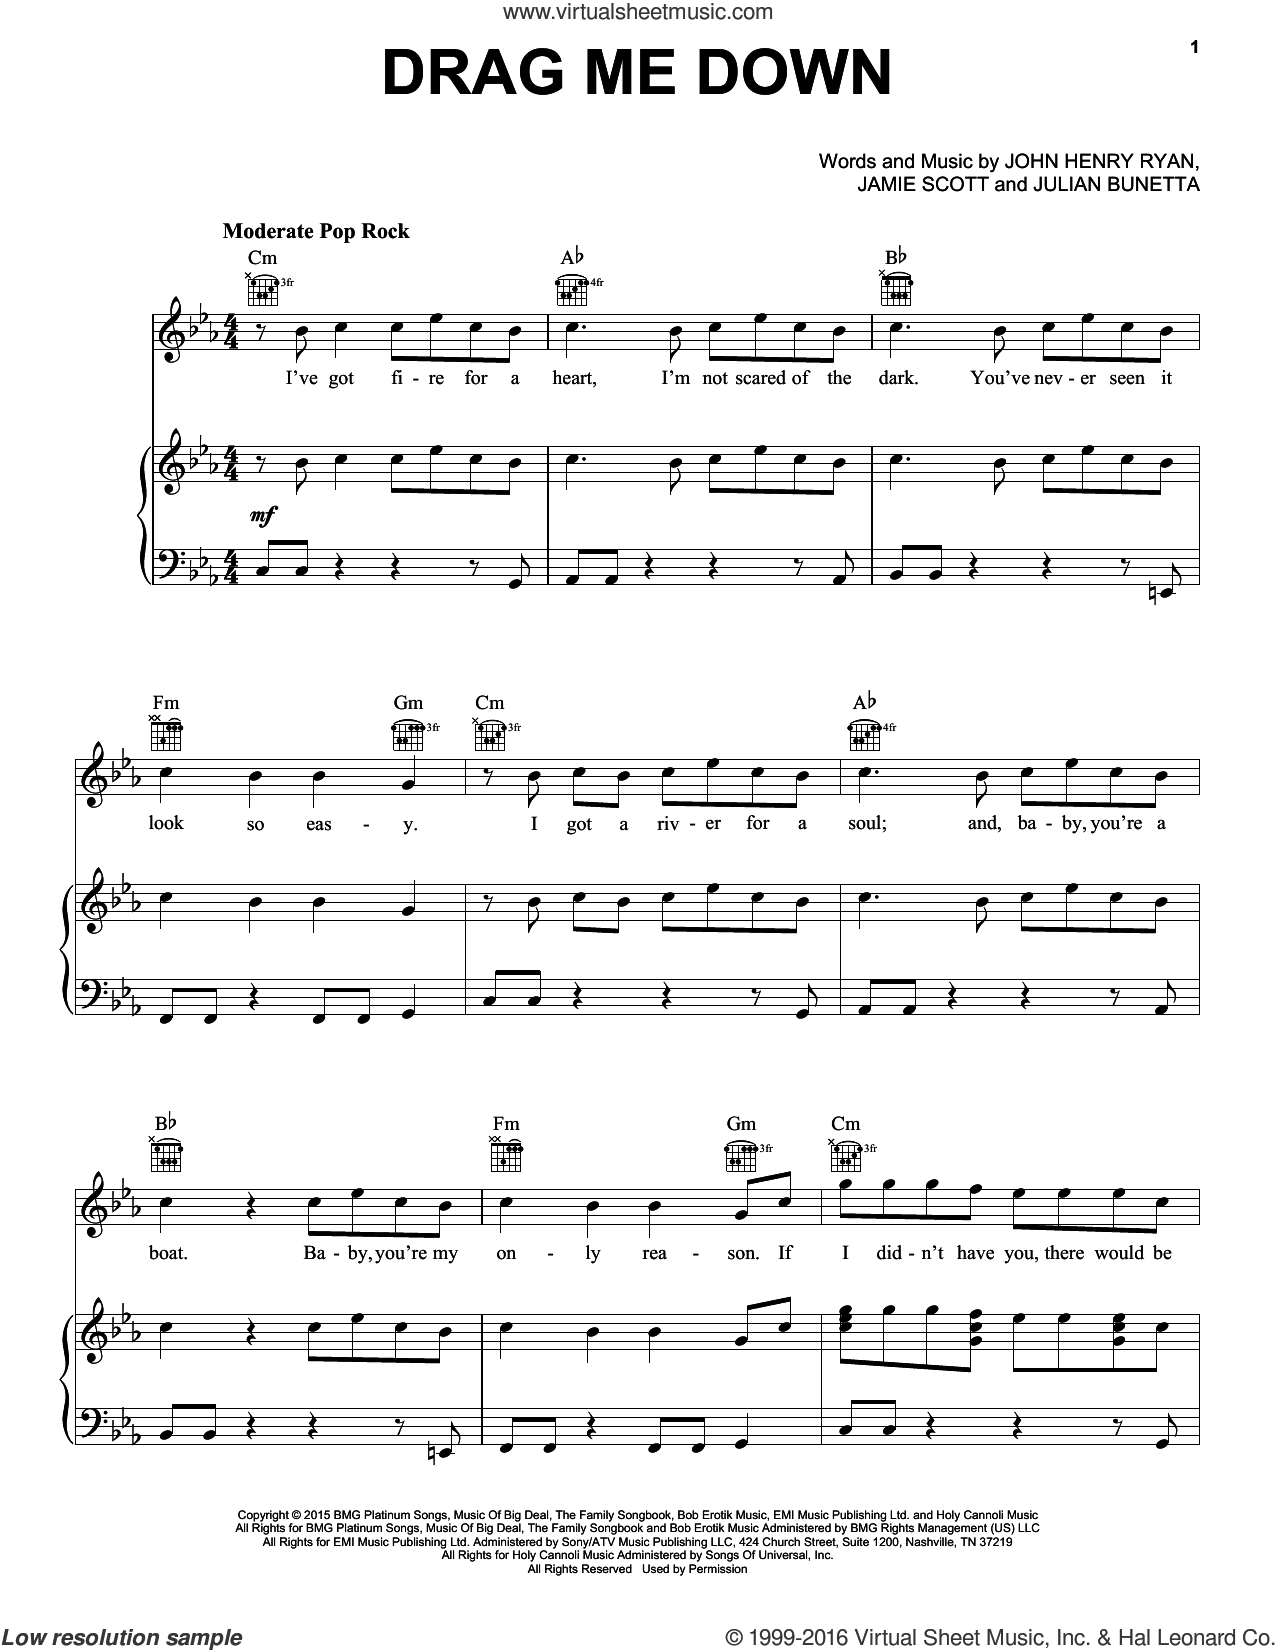 Drag Me Down sheet music for voice, piano or guitar plus backing track by Julian Bunetta